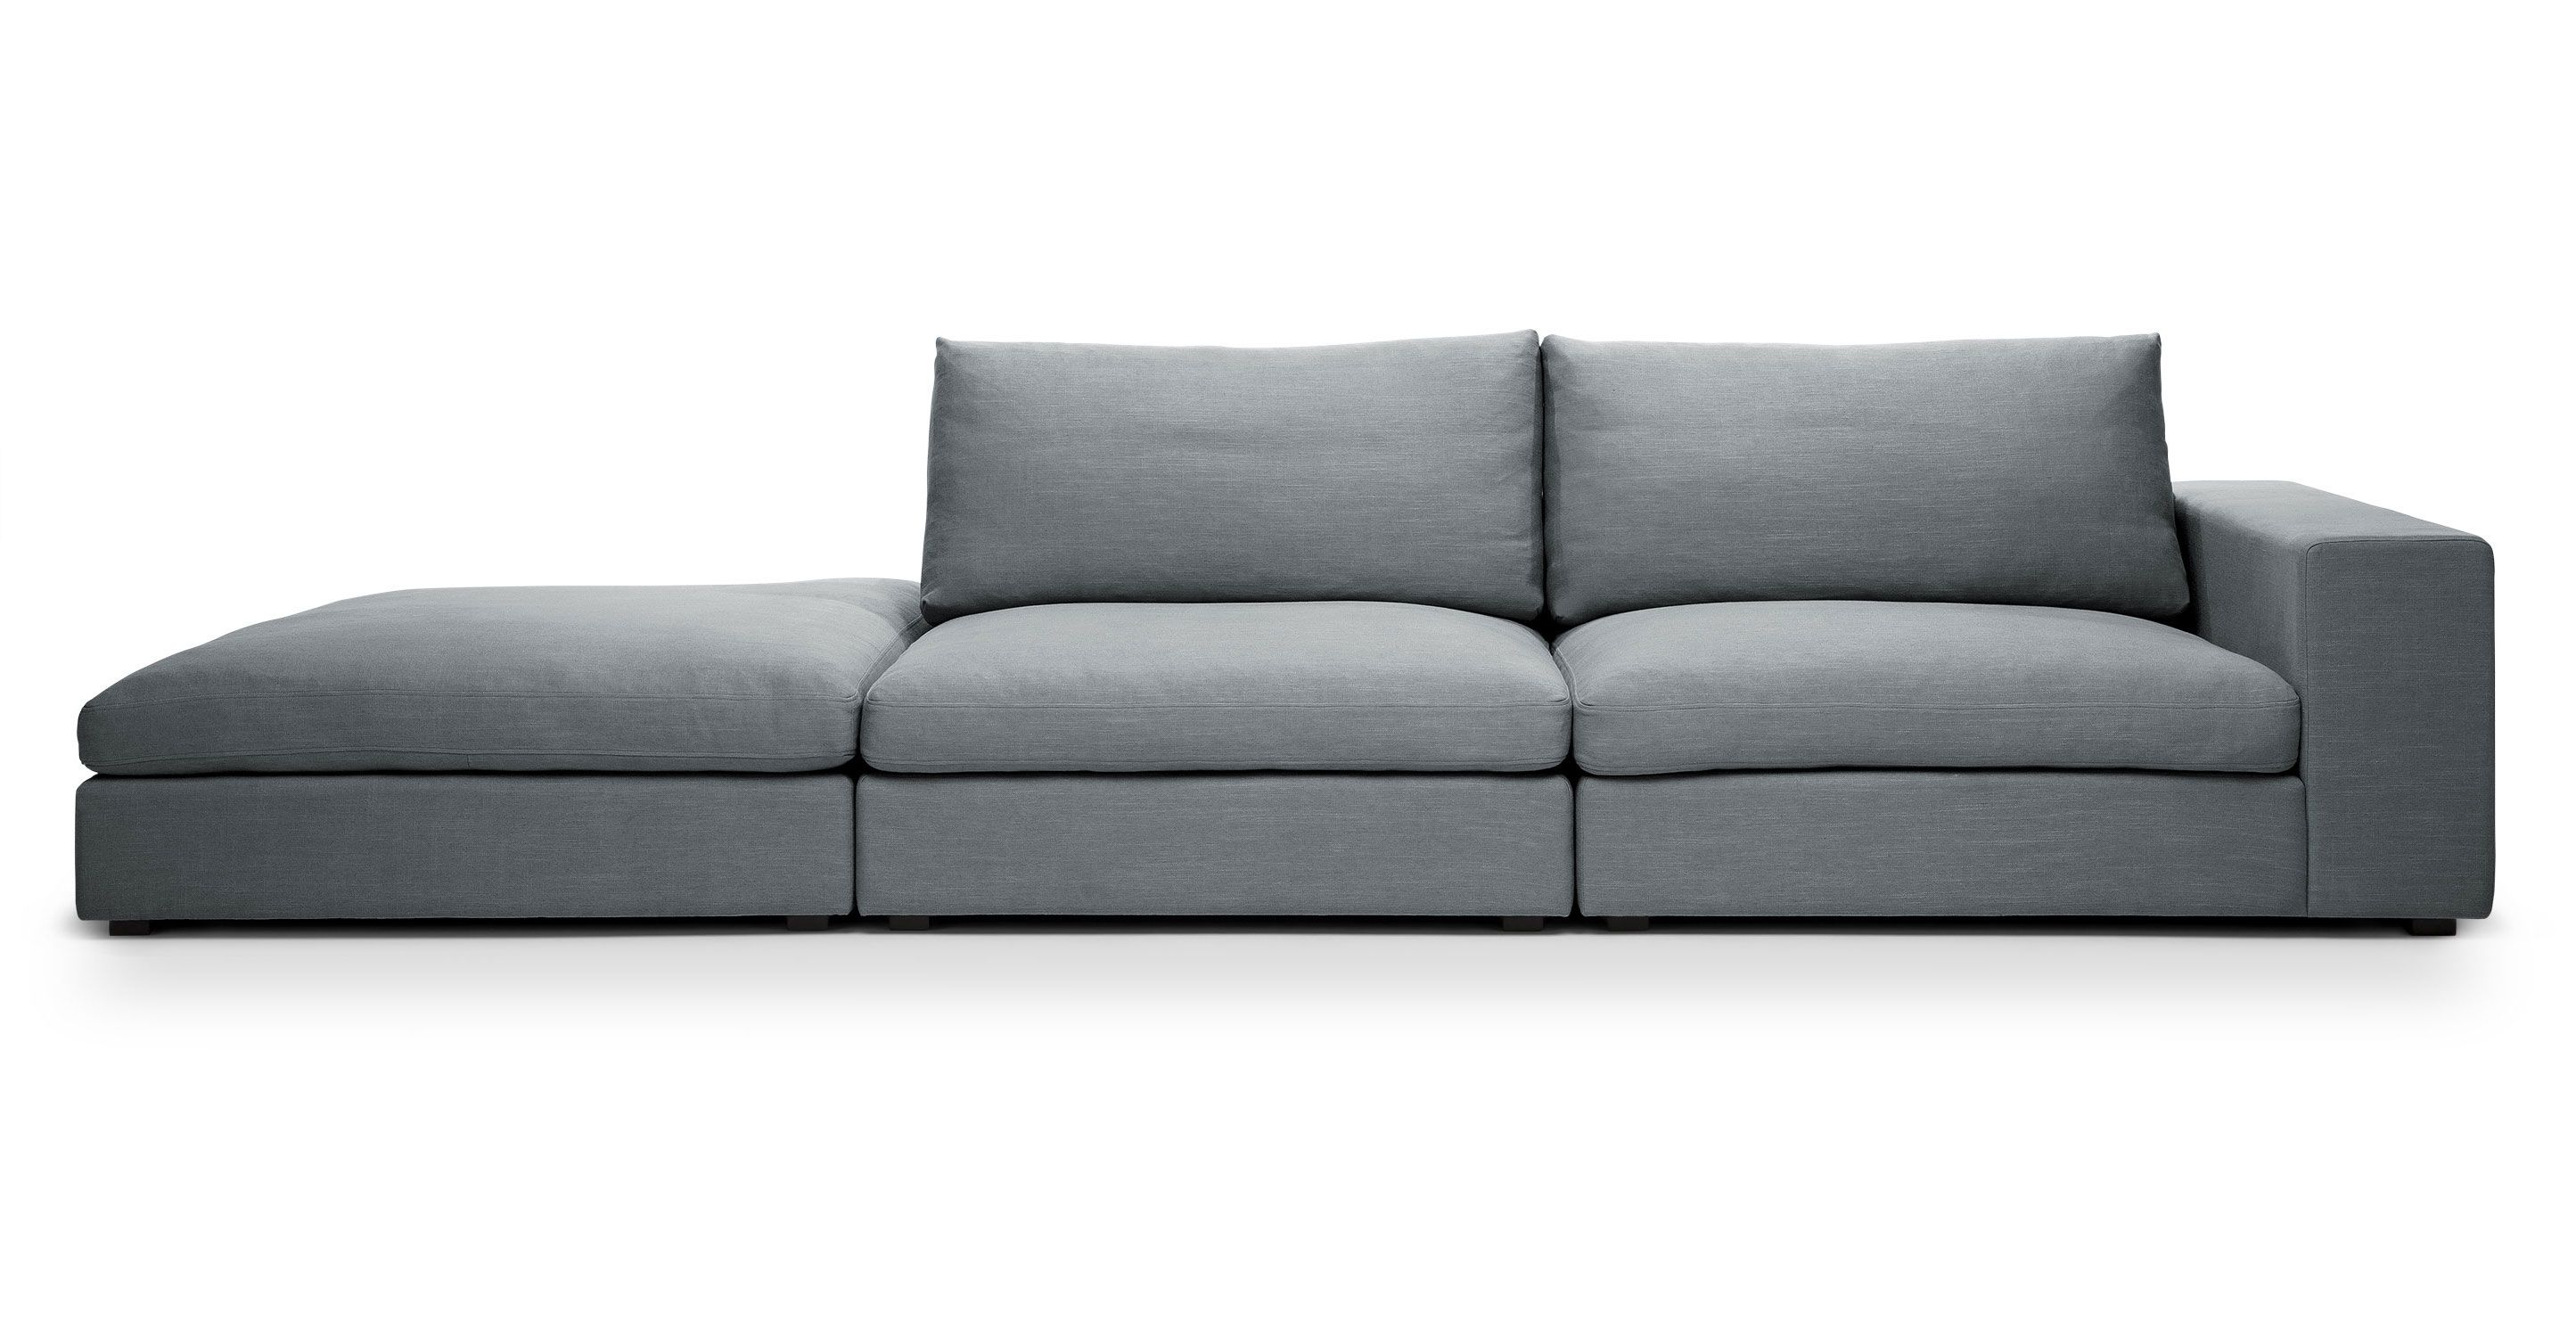 Fall Sandro Collection In 2020 Mid Century Modern Sofa Modern Sofa Sectional Mid Century Modern Couch